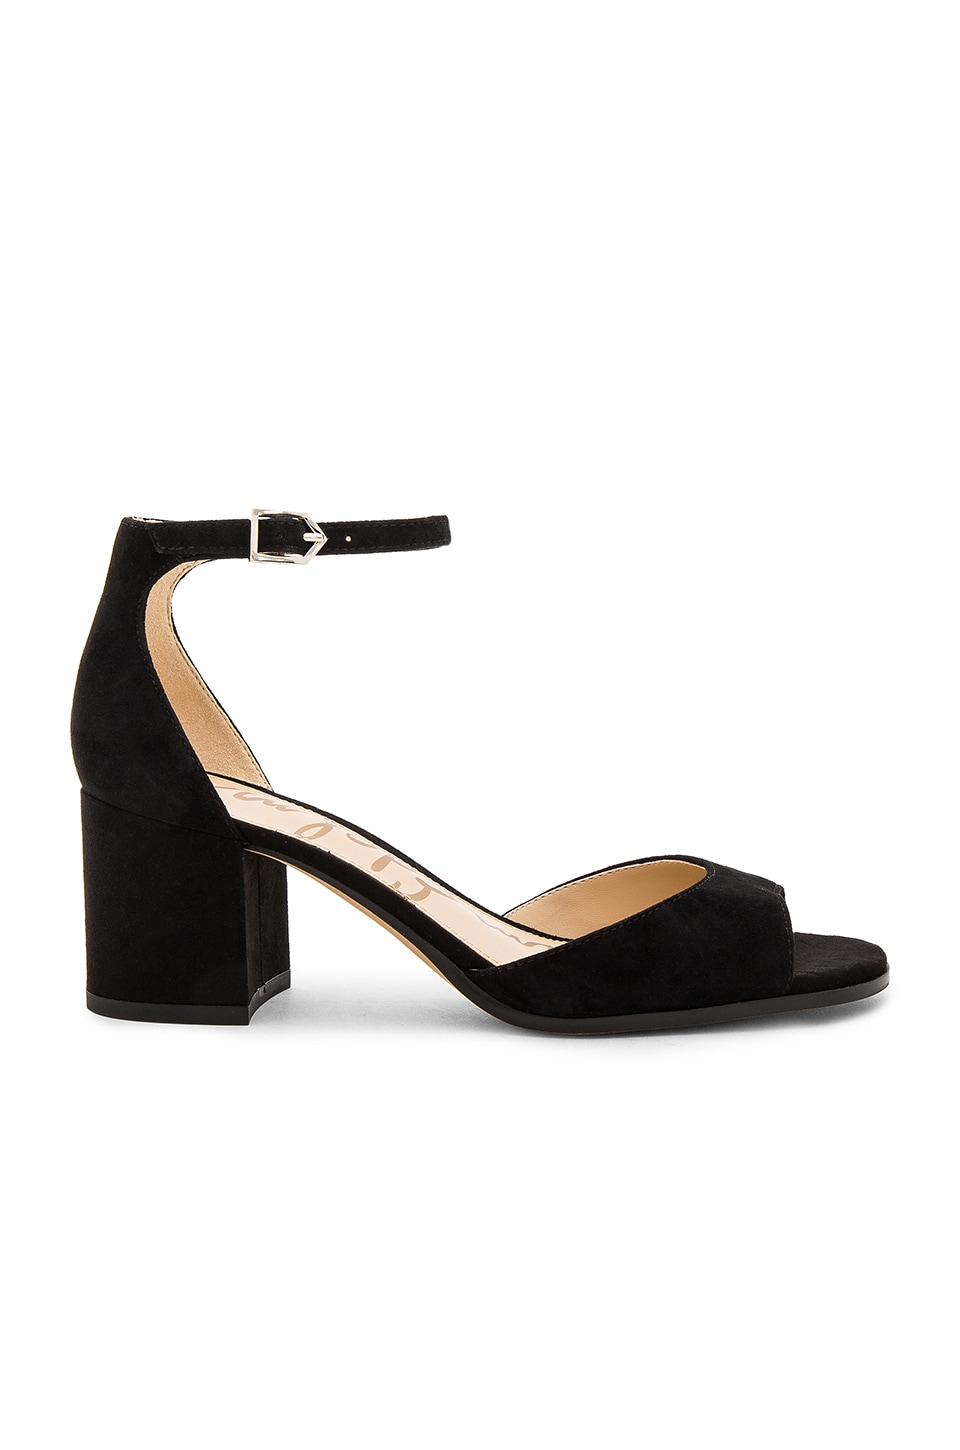 Sam Edelman Susie Heel in Black